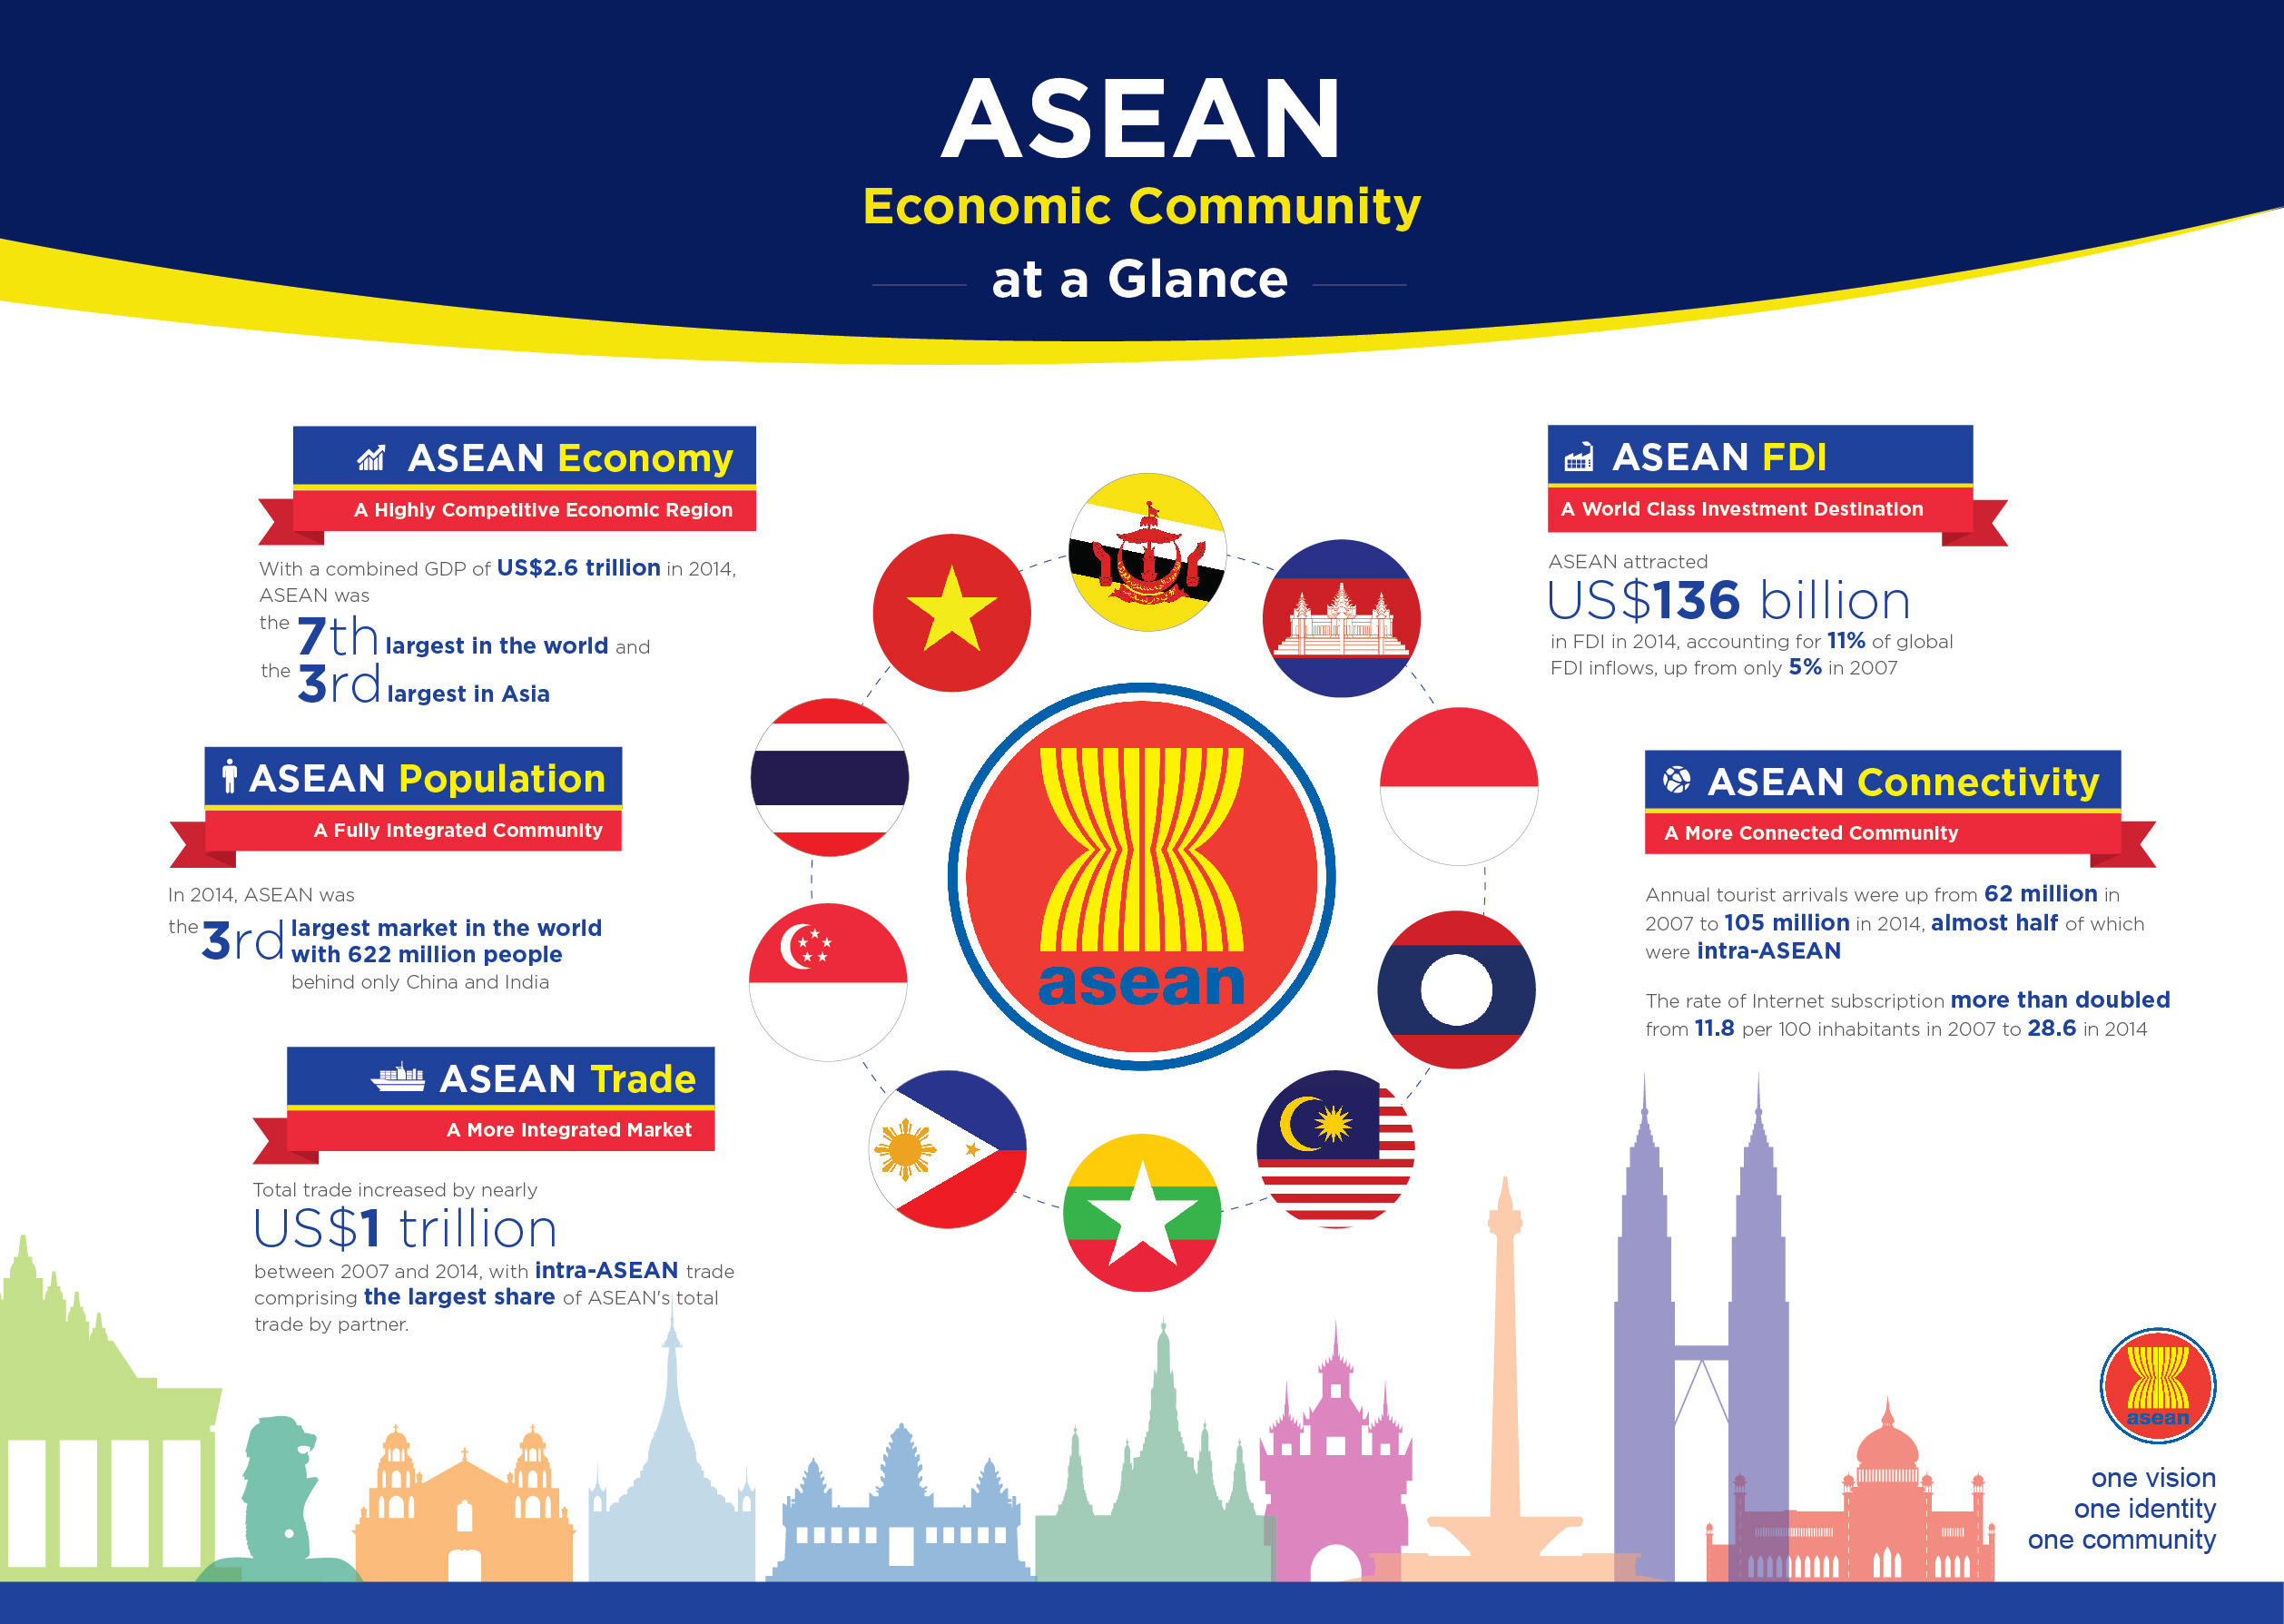 asean_Glance_Infographic